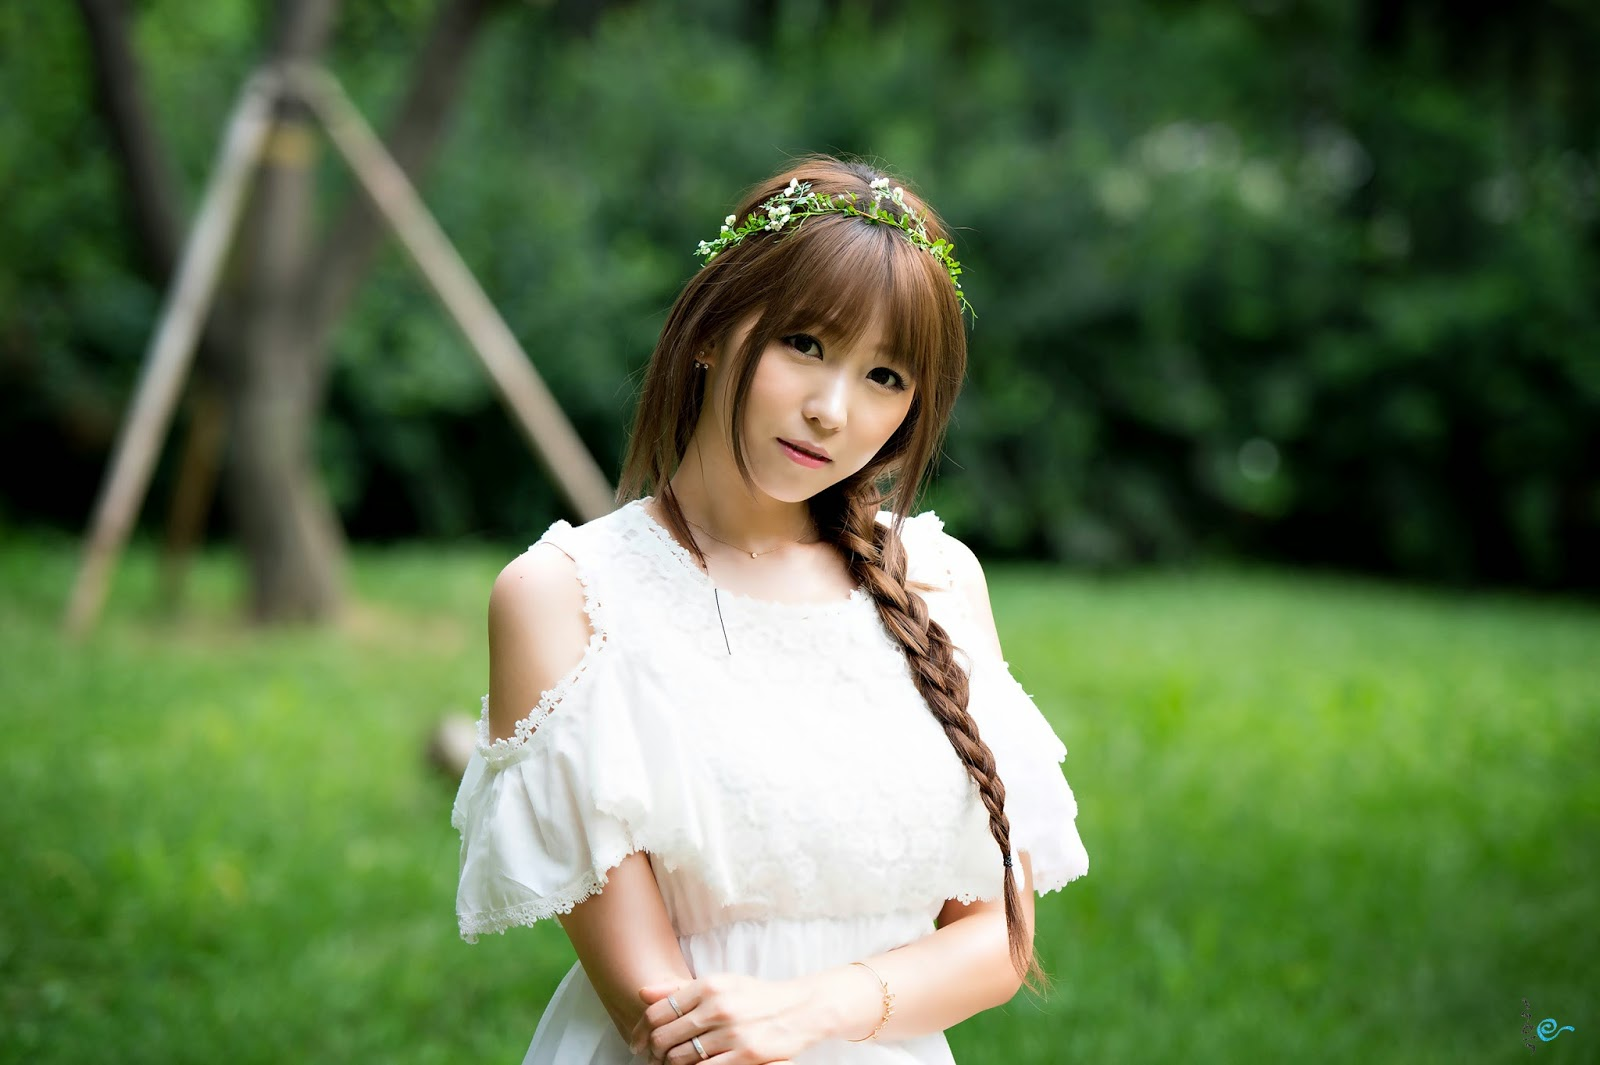 1 Lovely Lee Eun Hye In Outdoor Photo Shoot - very cute asian girl-girlcute4u.blogspot.com